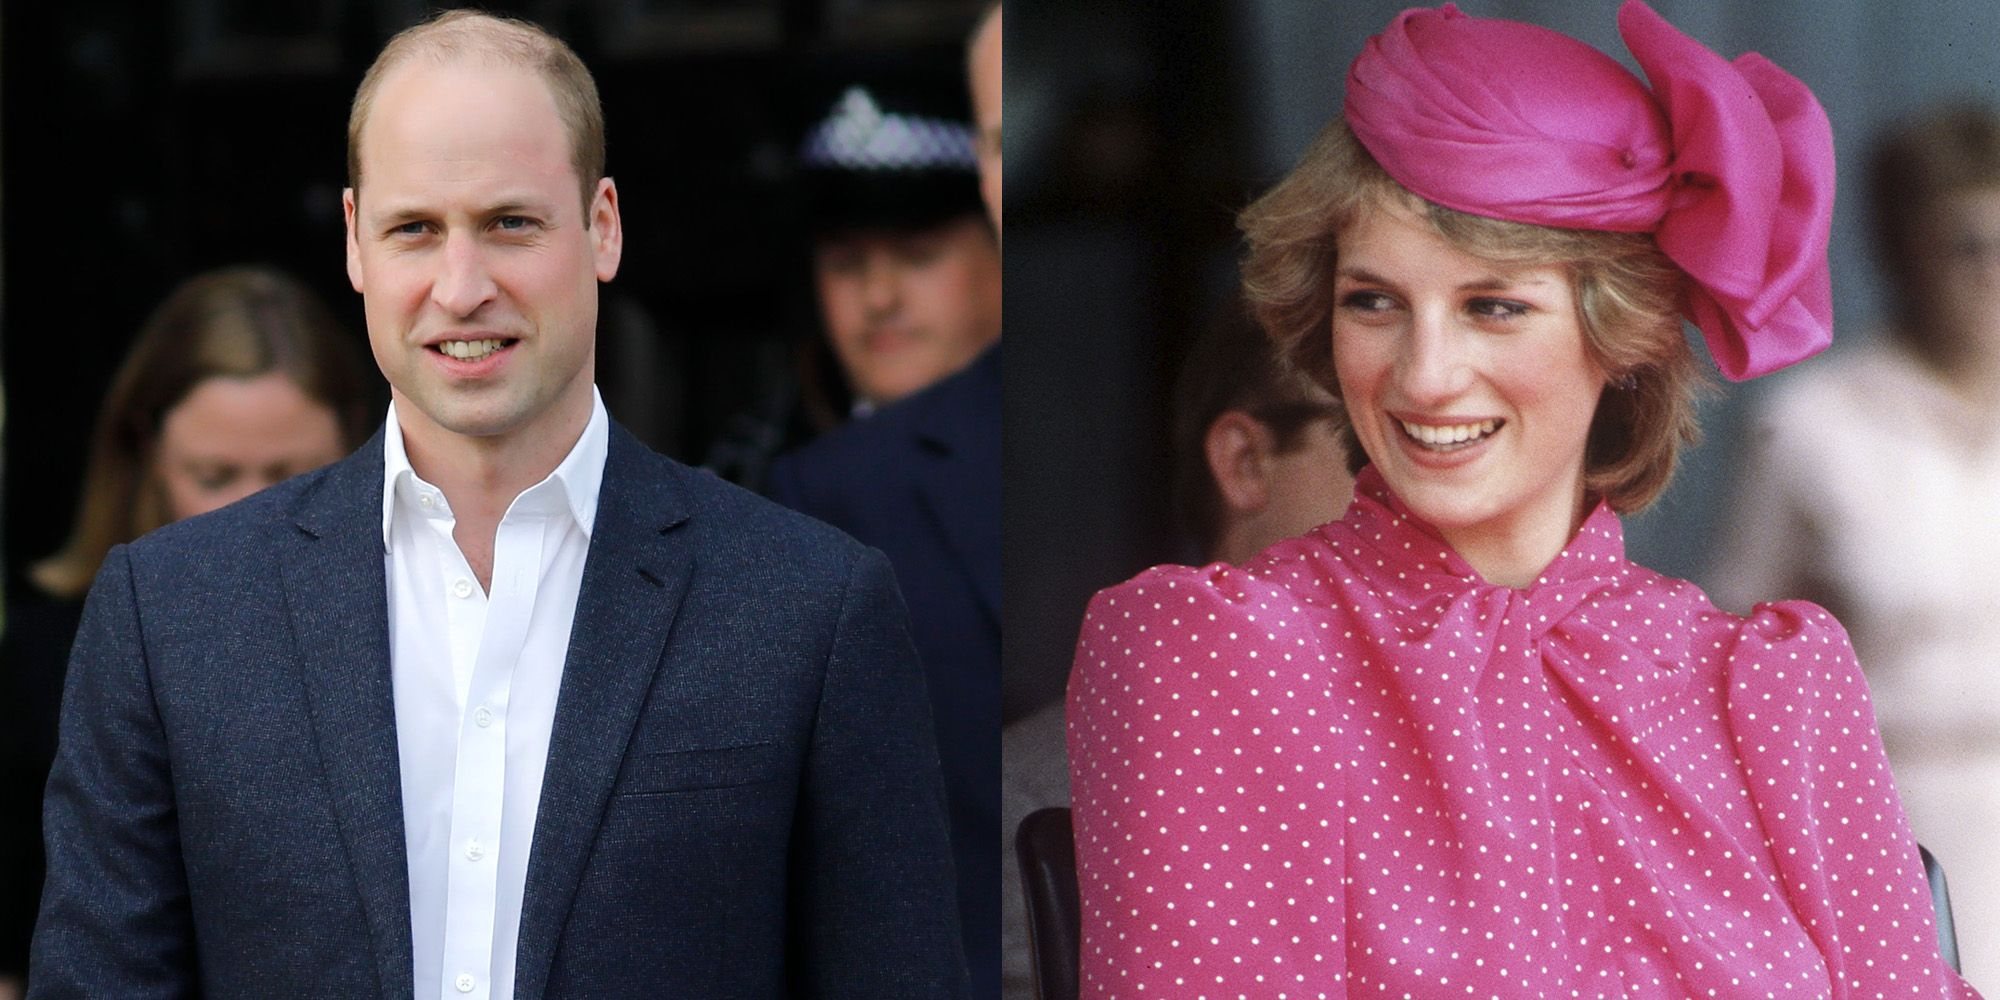 Prince William Birthday Celebrations: How Will He Spend His 35th Birthday